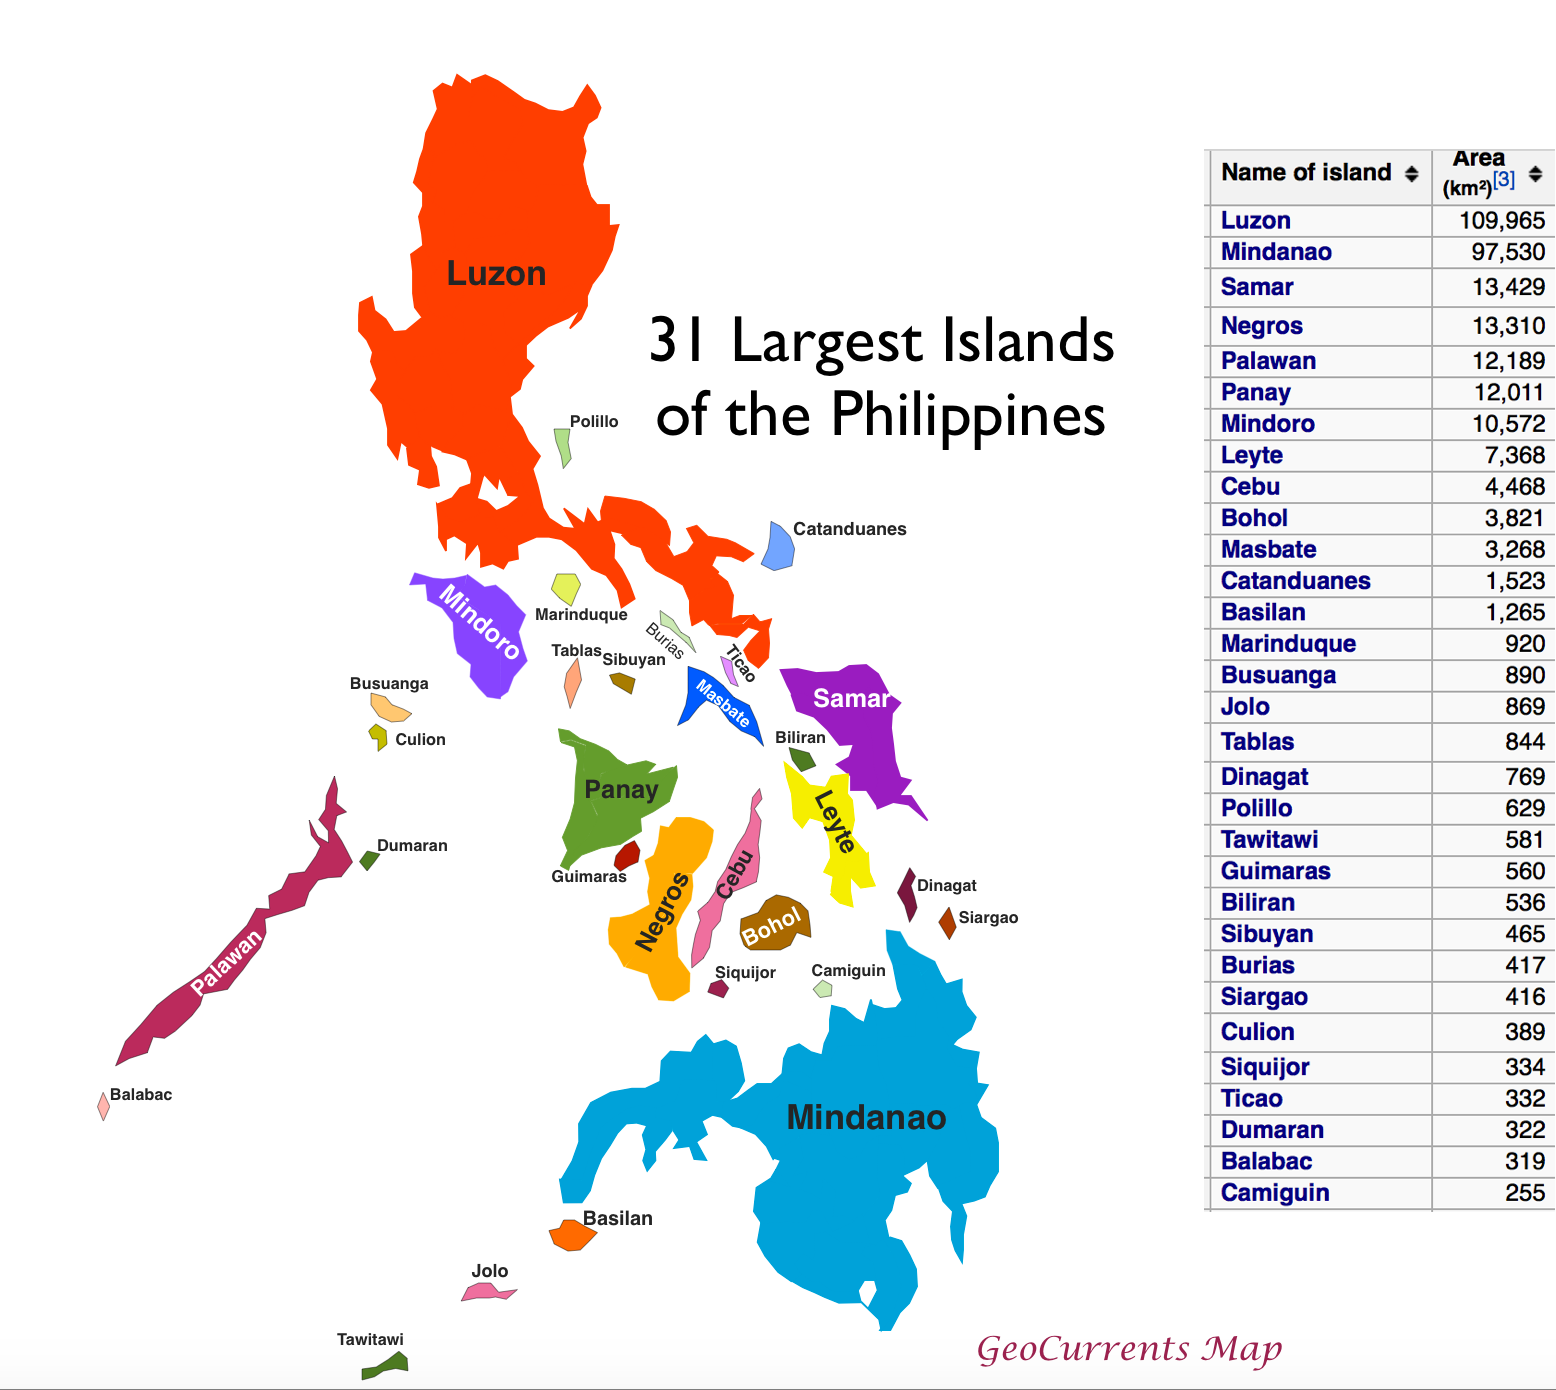 GeoCurrents Maps Of The Philippines GeoCurrents - Map of the phillipines